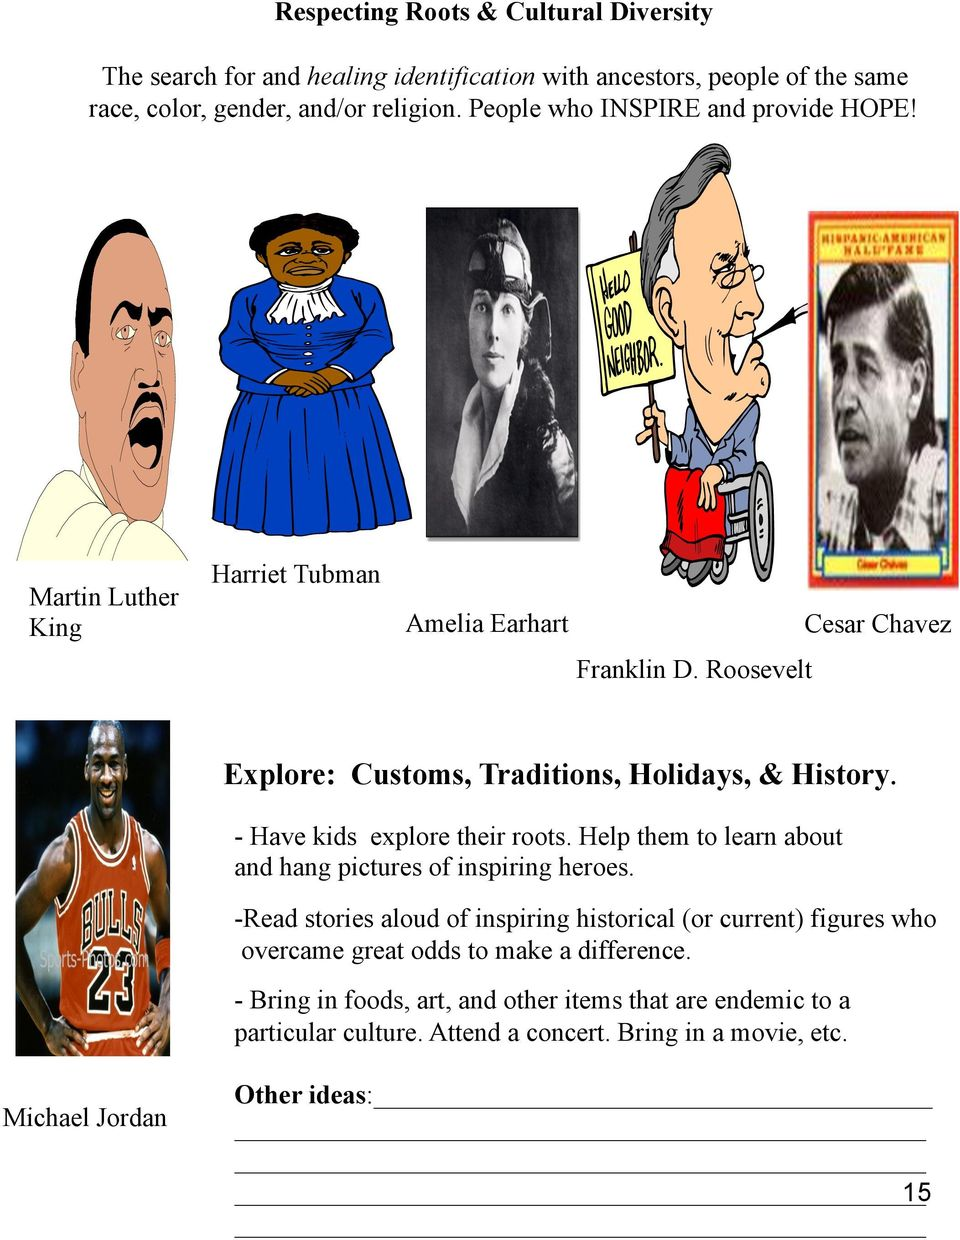 - Have kids explore their roots. Help them to learn about and hang pictures of inspiring heroes.